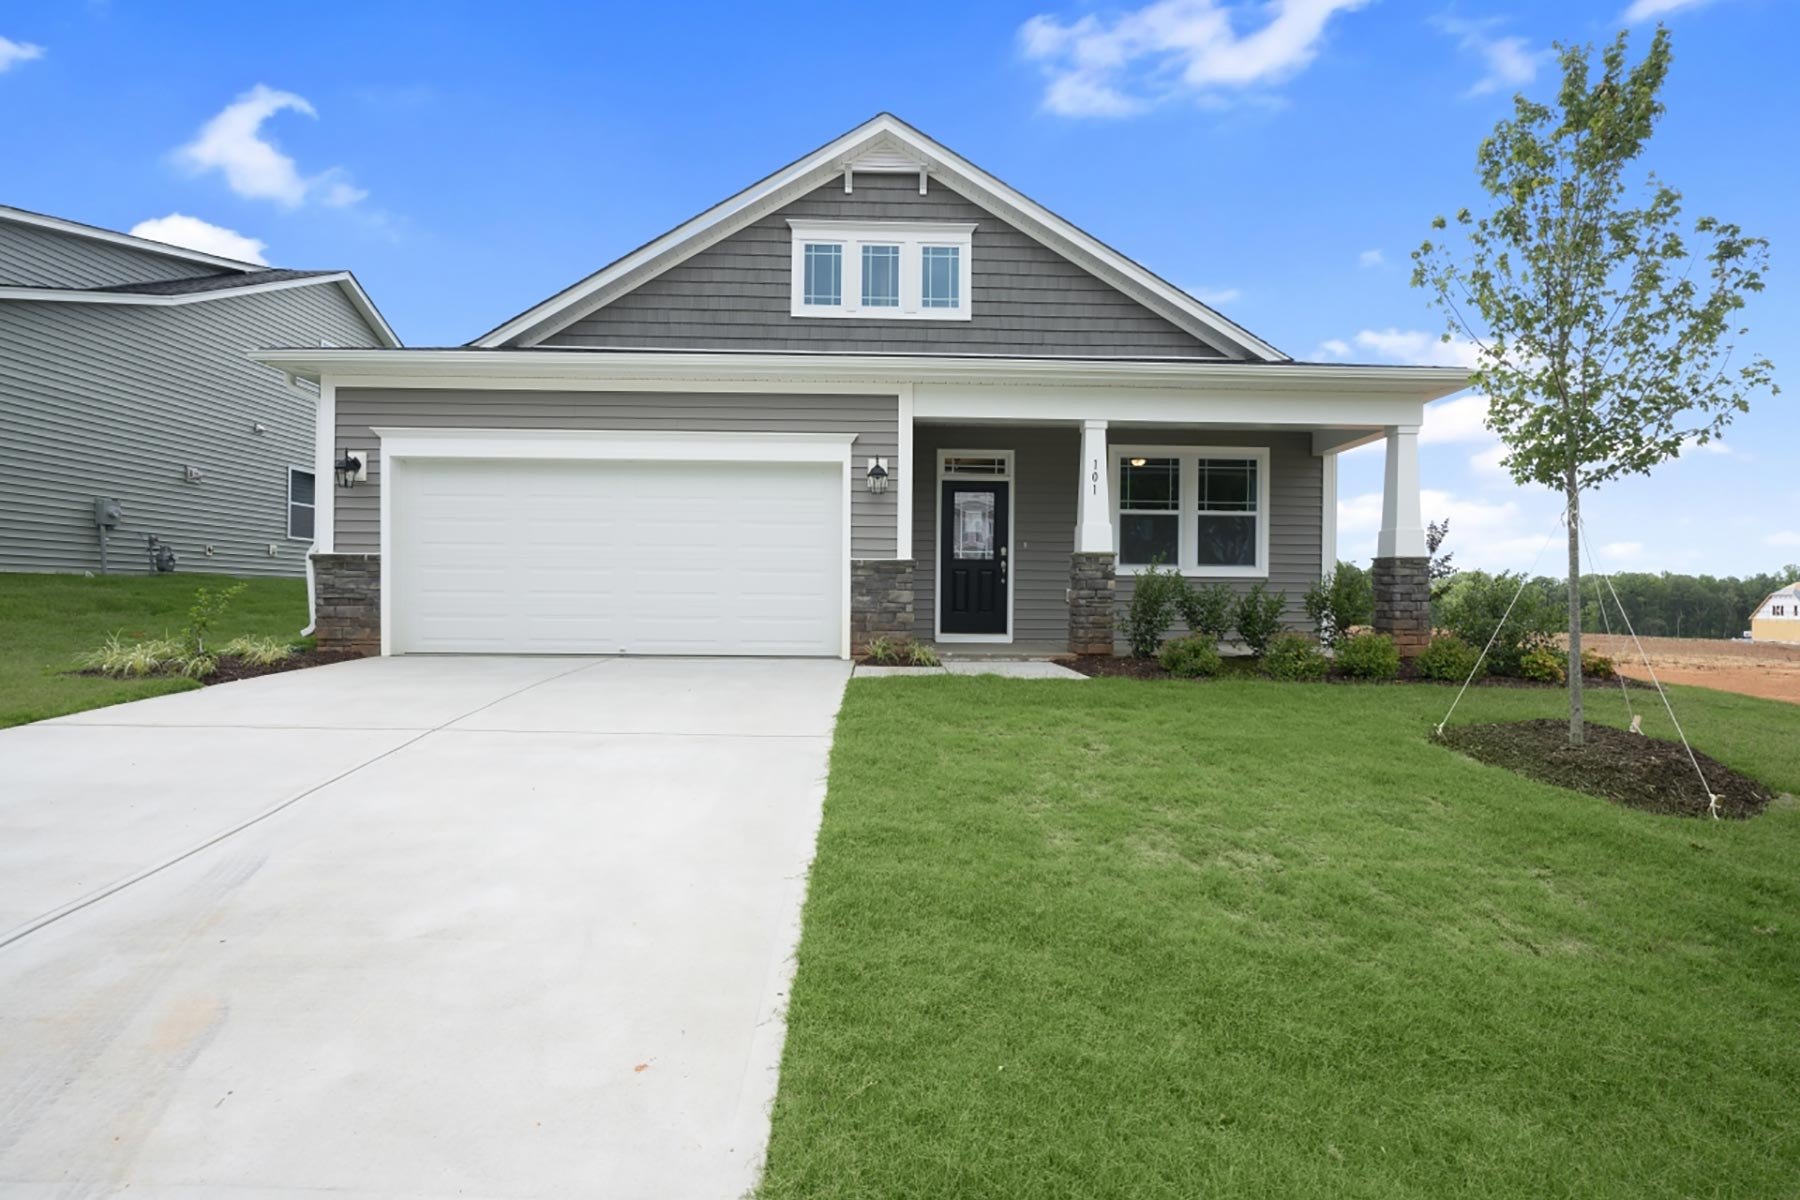 Evelyn Plan rdu-bedford-evelyn-exterior3 at Bedford at Flowers Plantation in Clayton North Carolina by Mattamy Homes